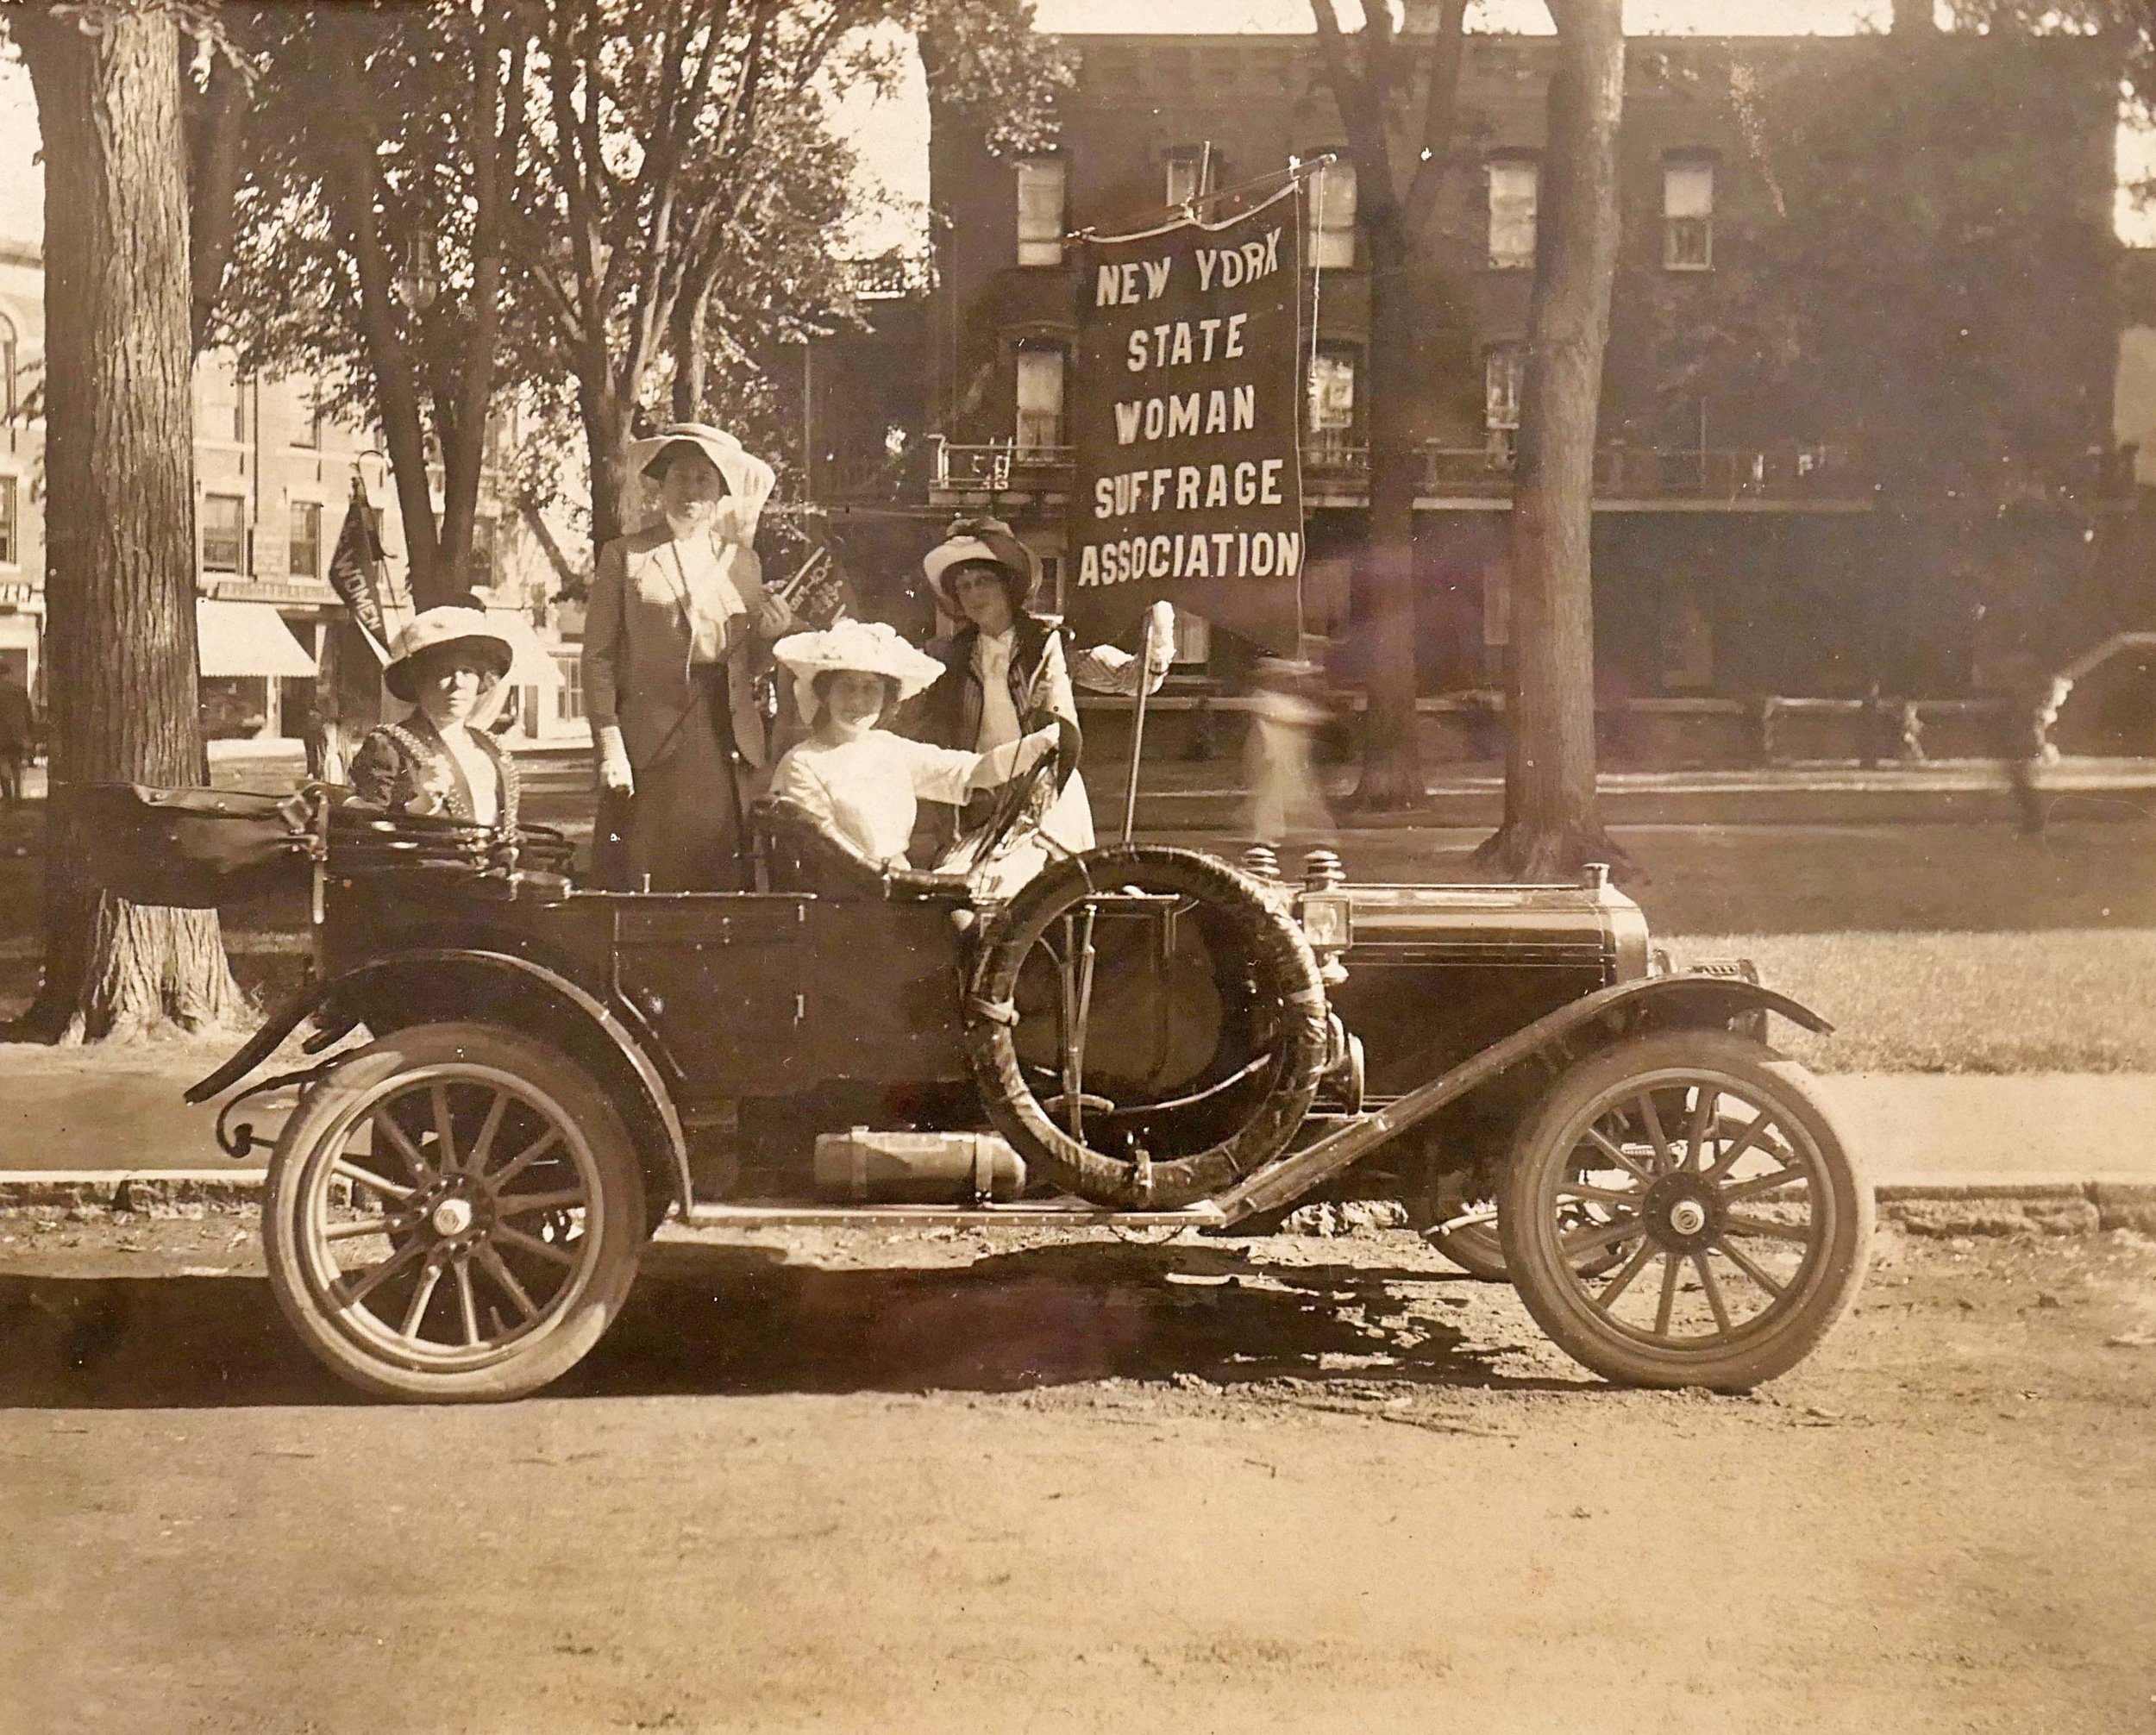 NYS-Suffrage-Assoc-in-car_web.jpg